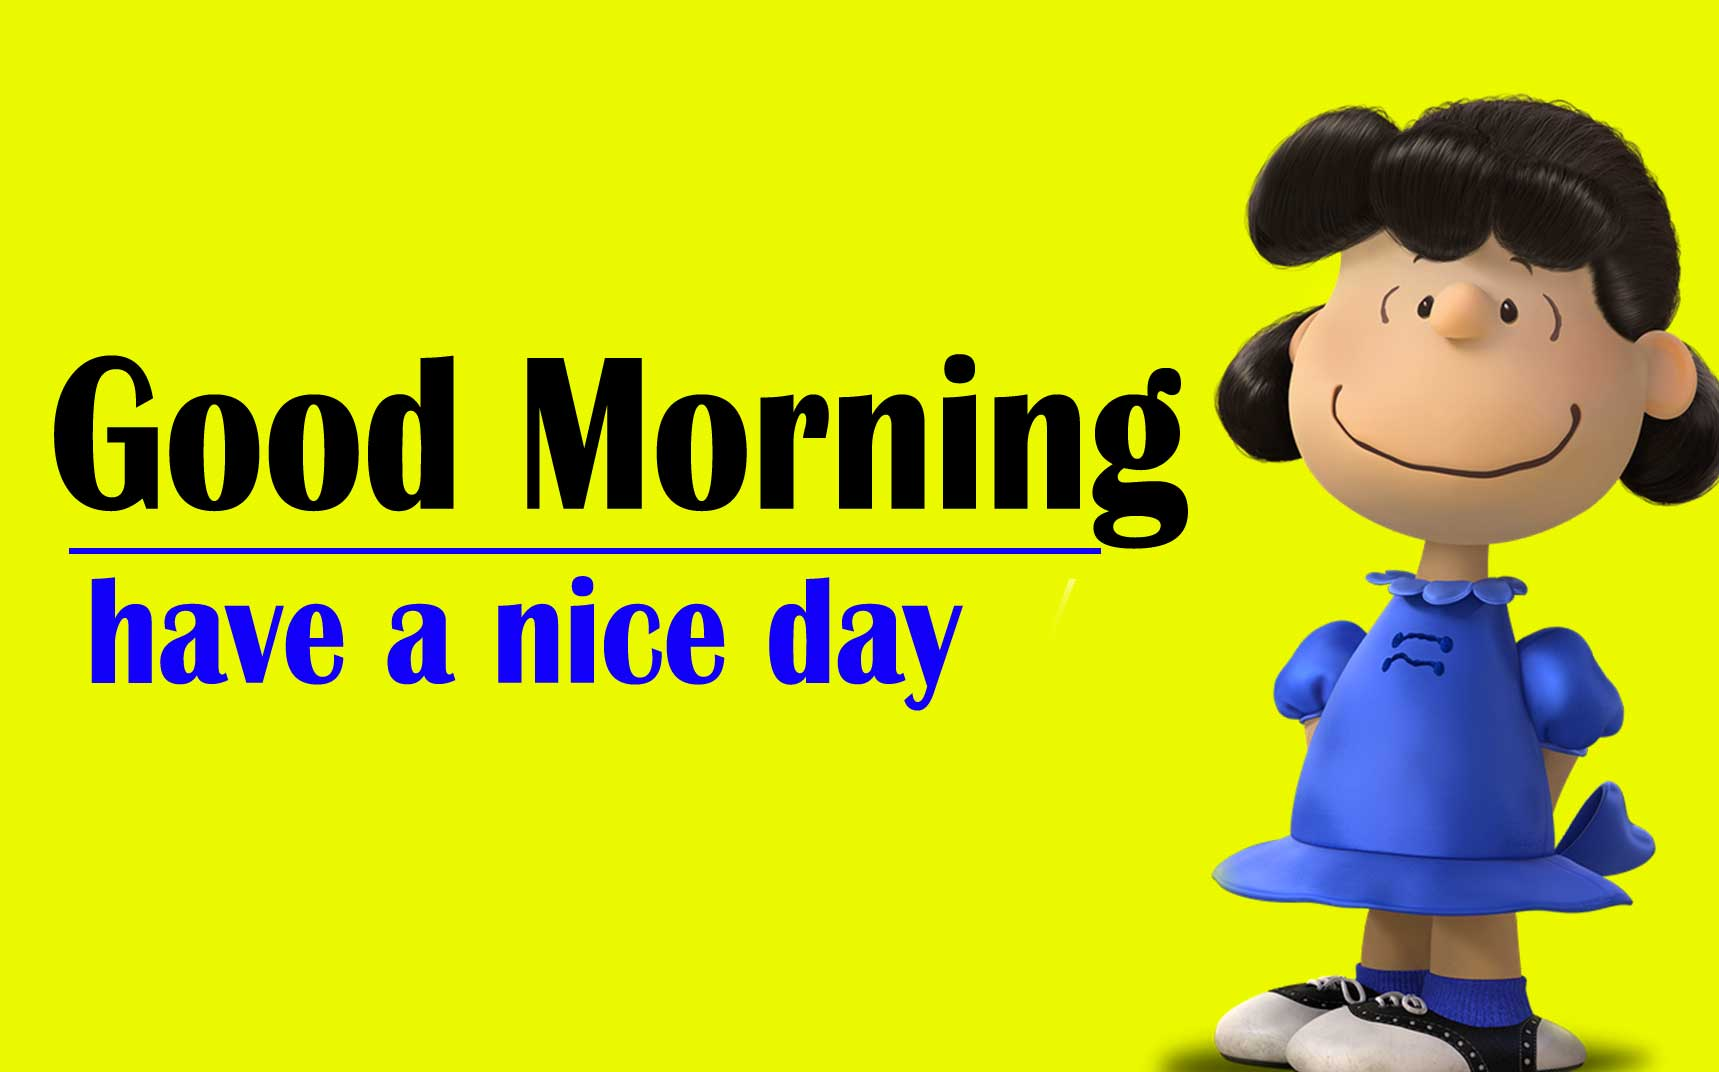 Snoopy good Morning 11